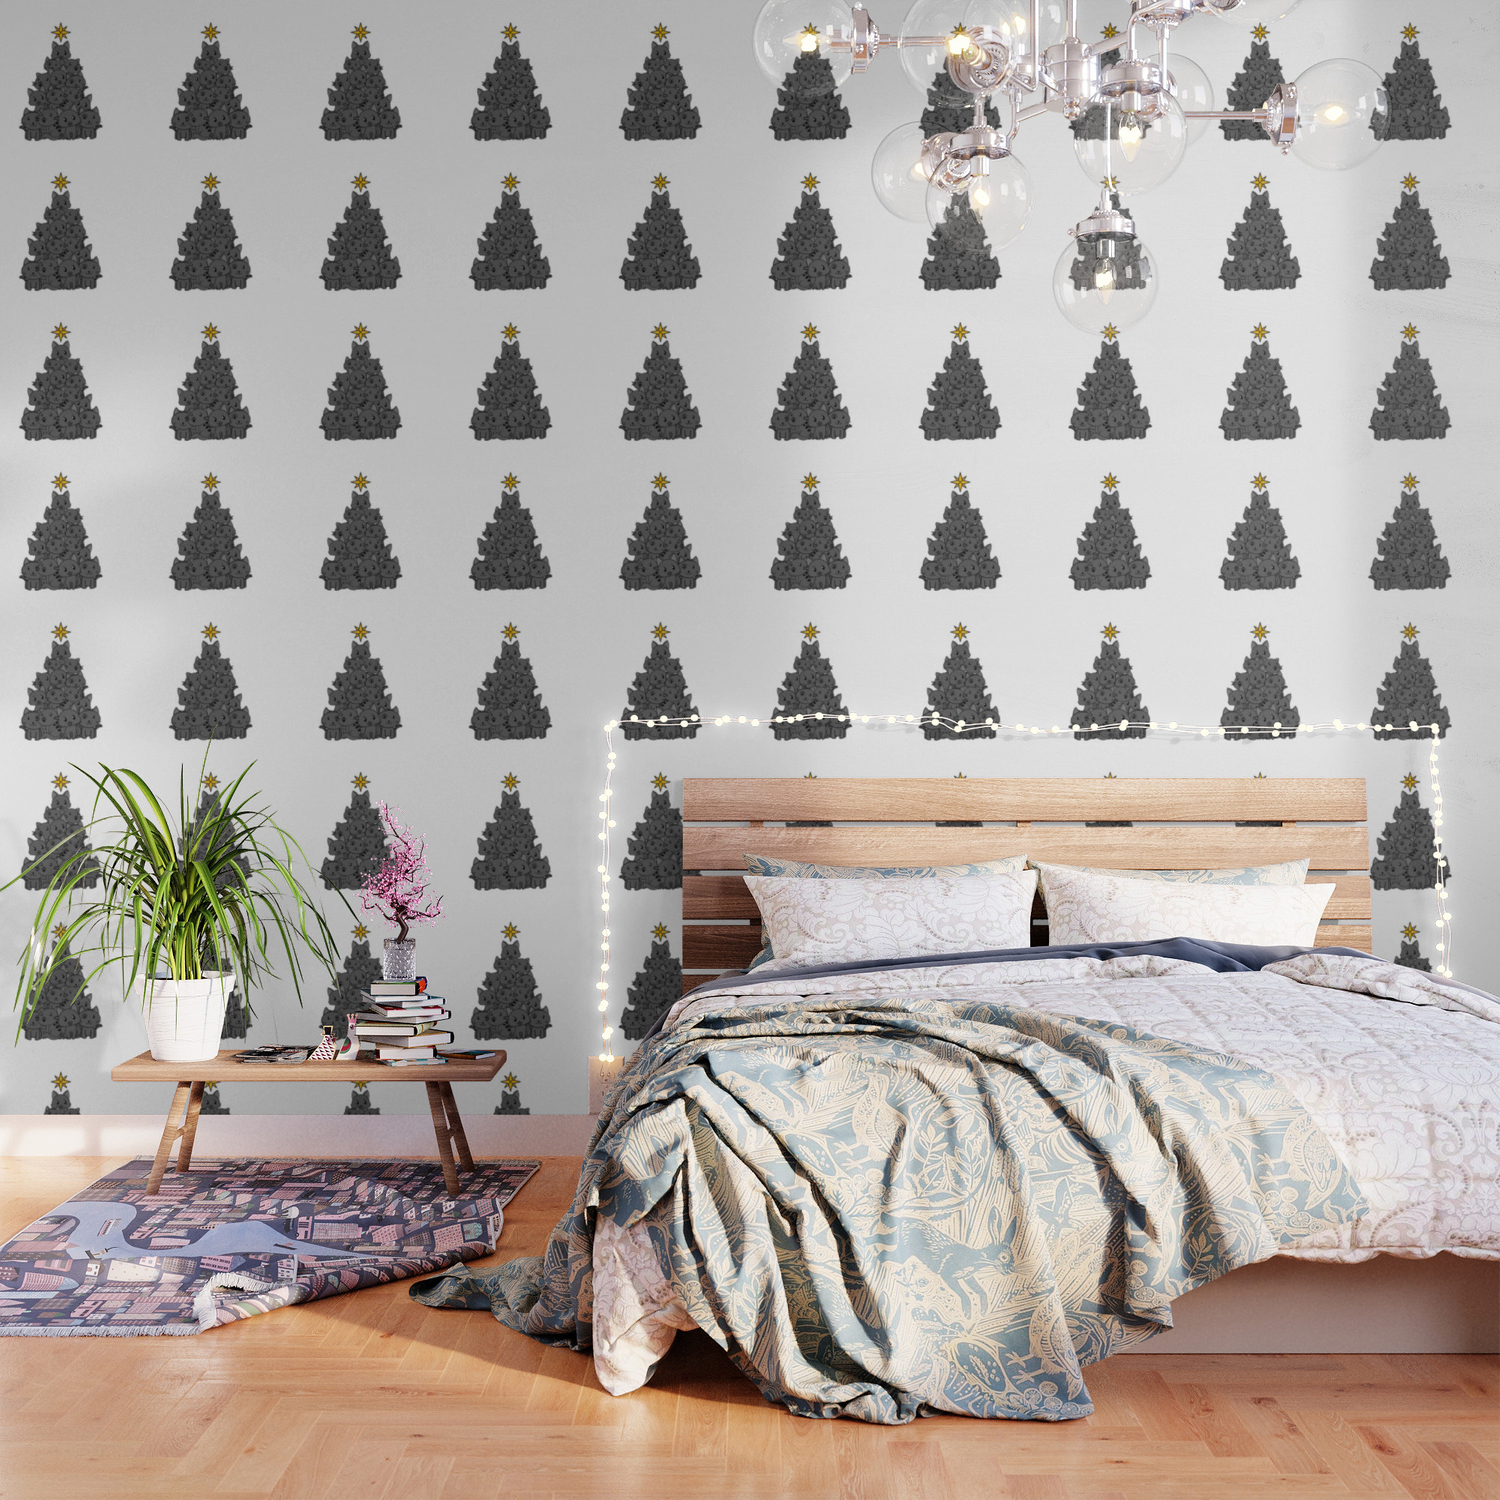 Meowy Christmas Tree Cute Black Cat Kittens Meow Wallpaper By Bubltees Society6